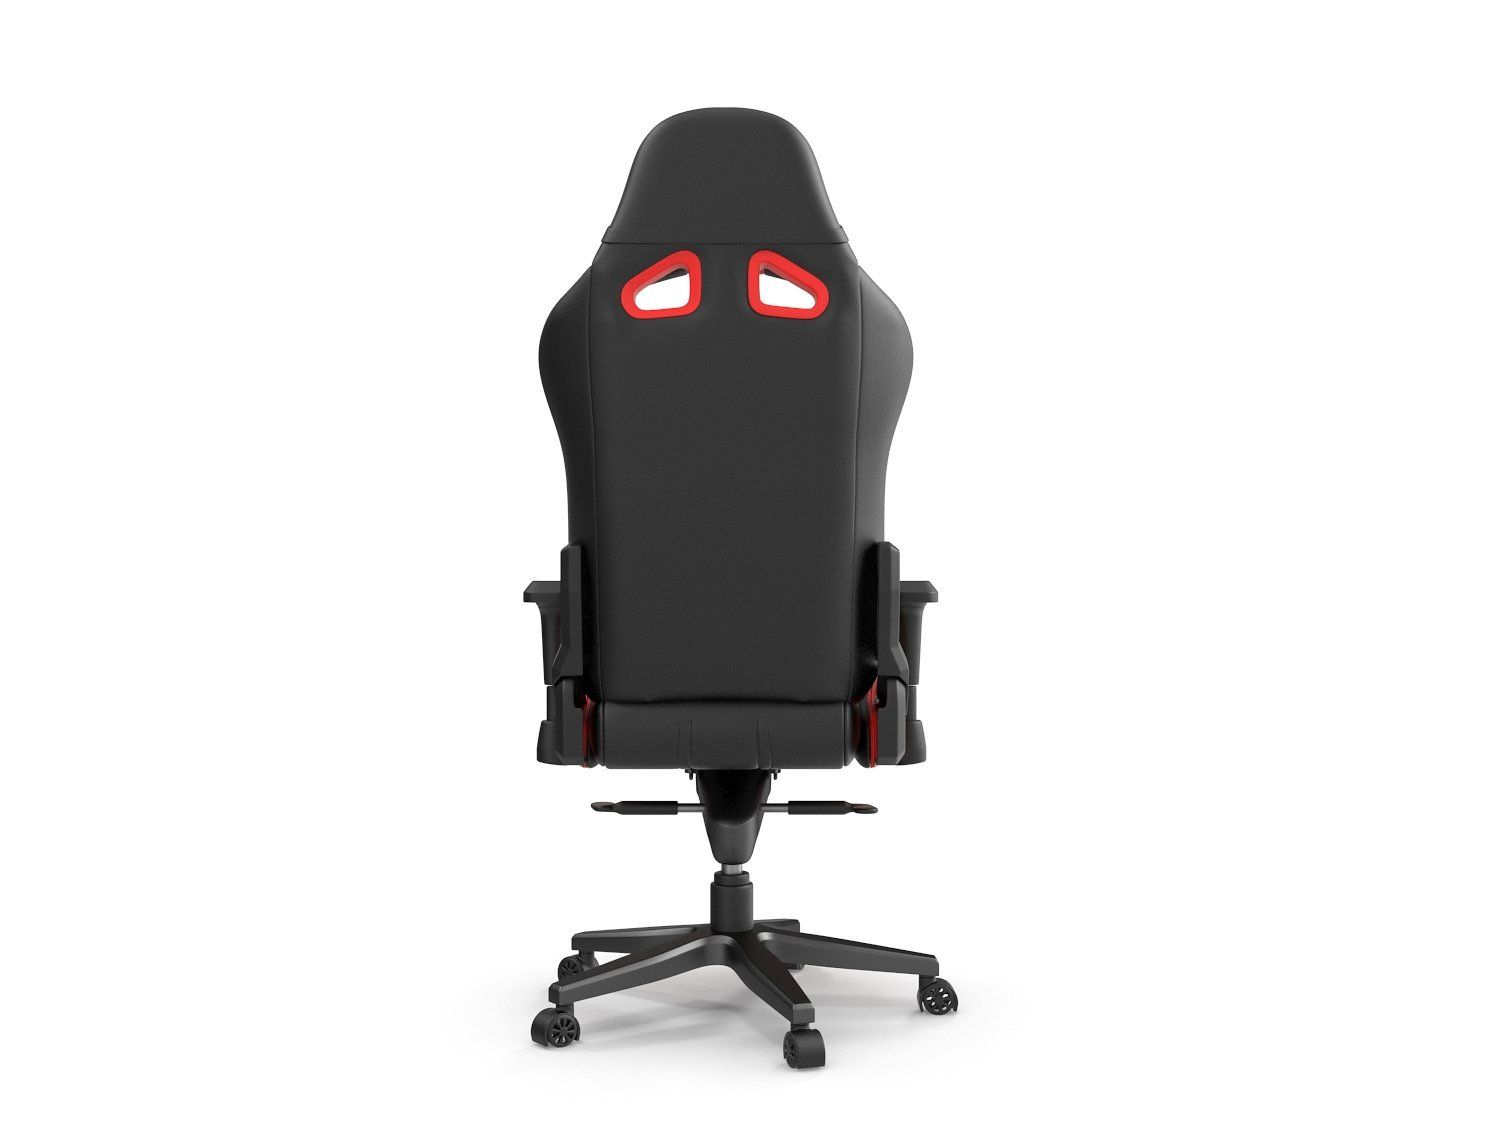 Opseat Modern Computer Gaming Chair Gaming Chair Accent Chairs For Sale Gaming Computer